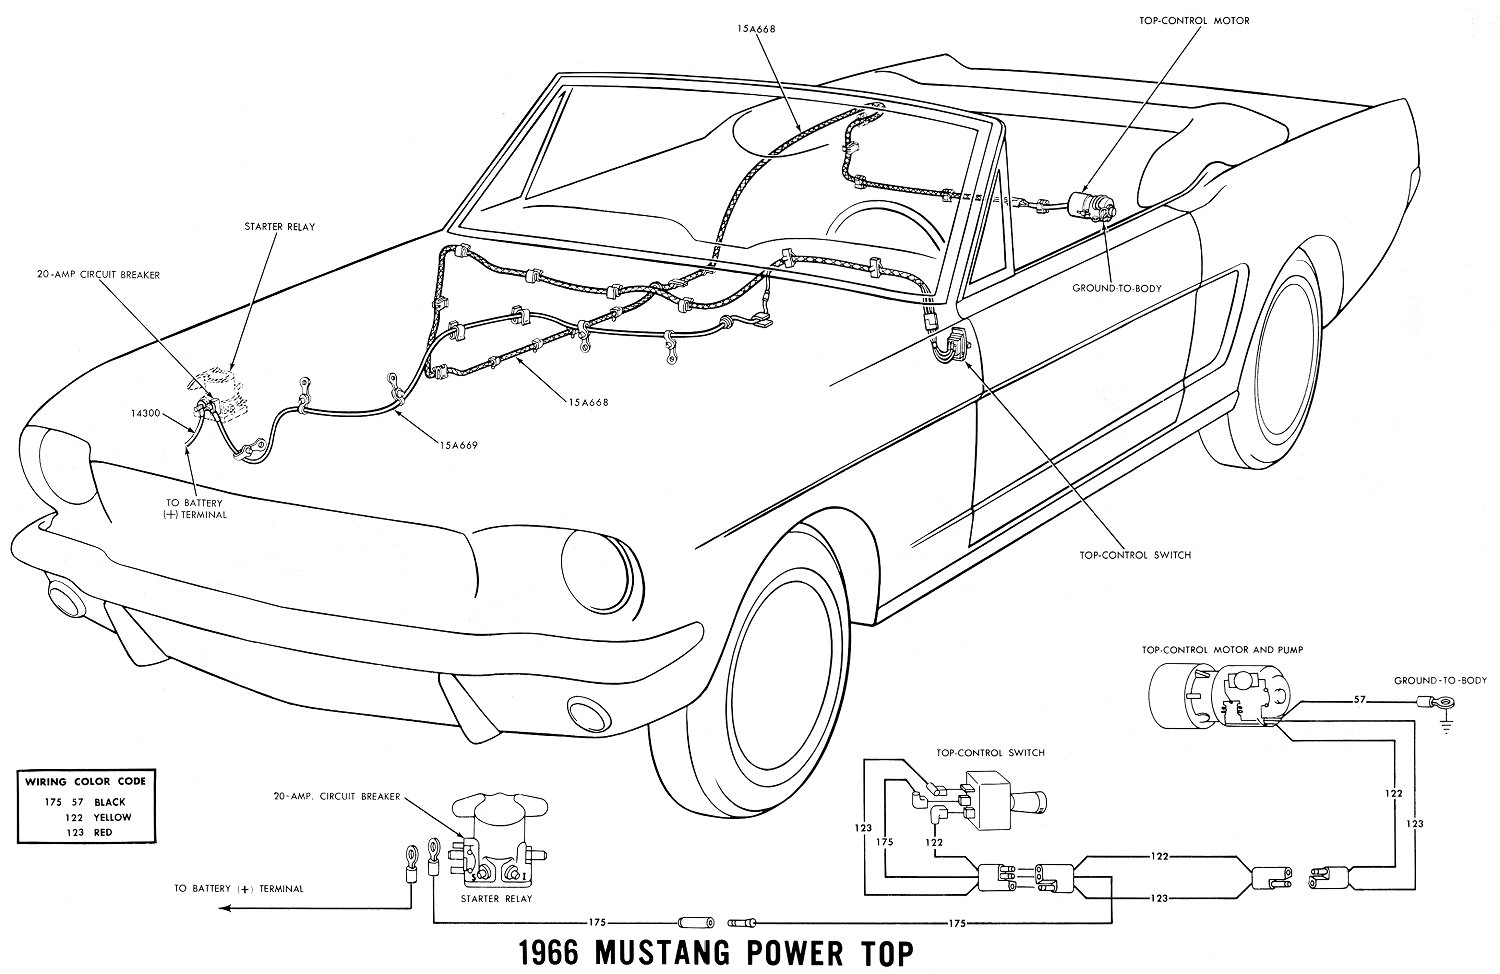 1966 mustang electrical diagrams 67 ford wiring diagrams 1966 mustang diagram #7